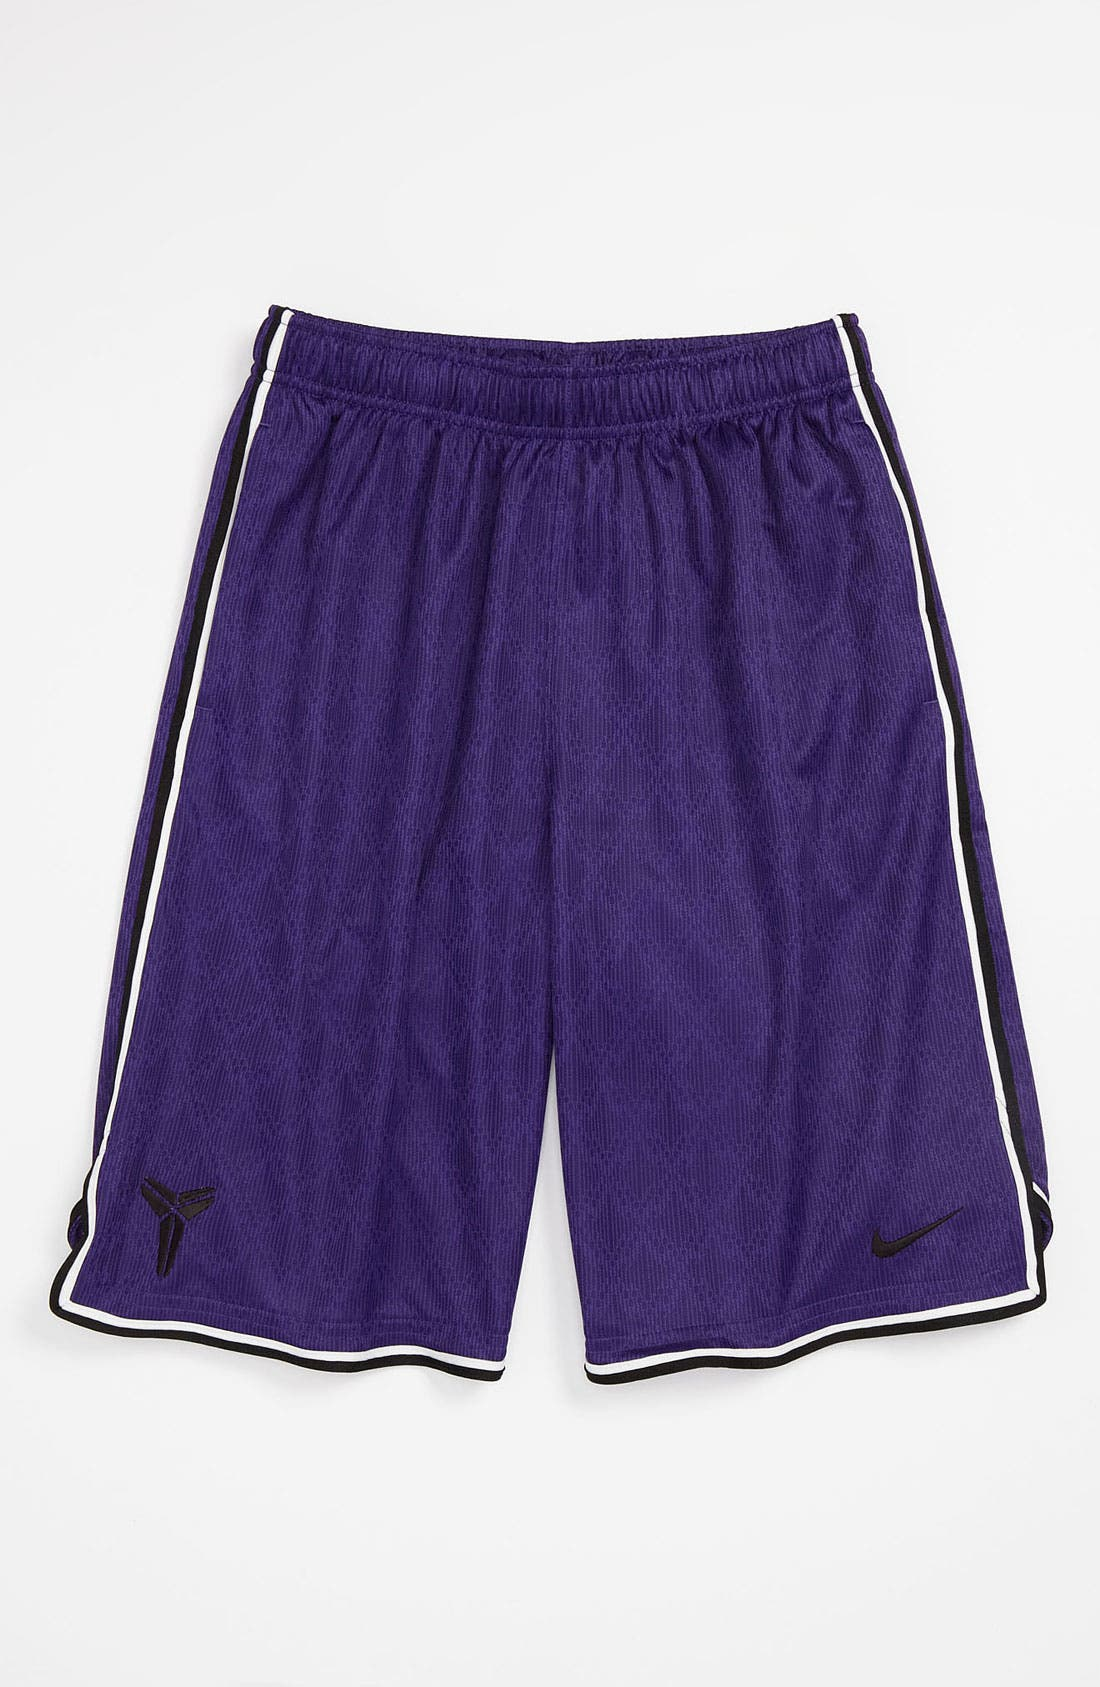 Main Image - Nike 'Kobe Essential' Shorts (Big Boys)